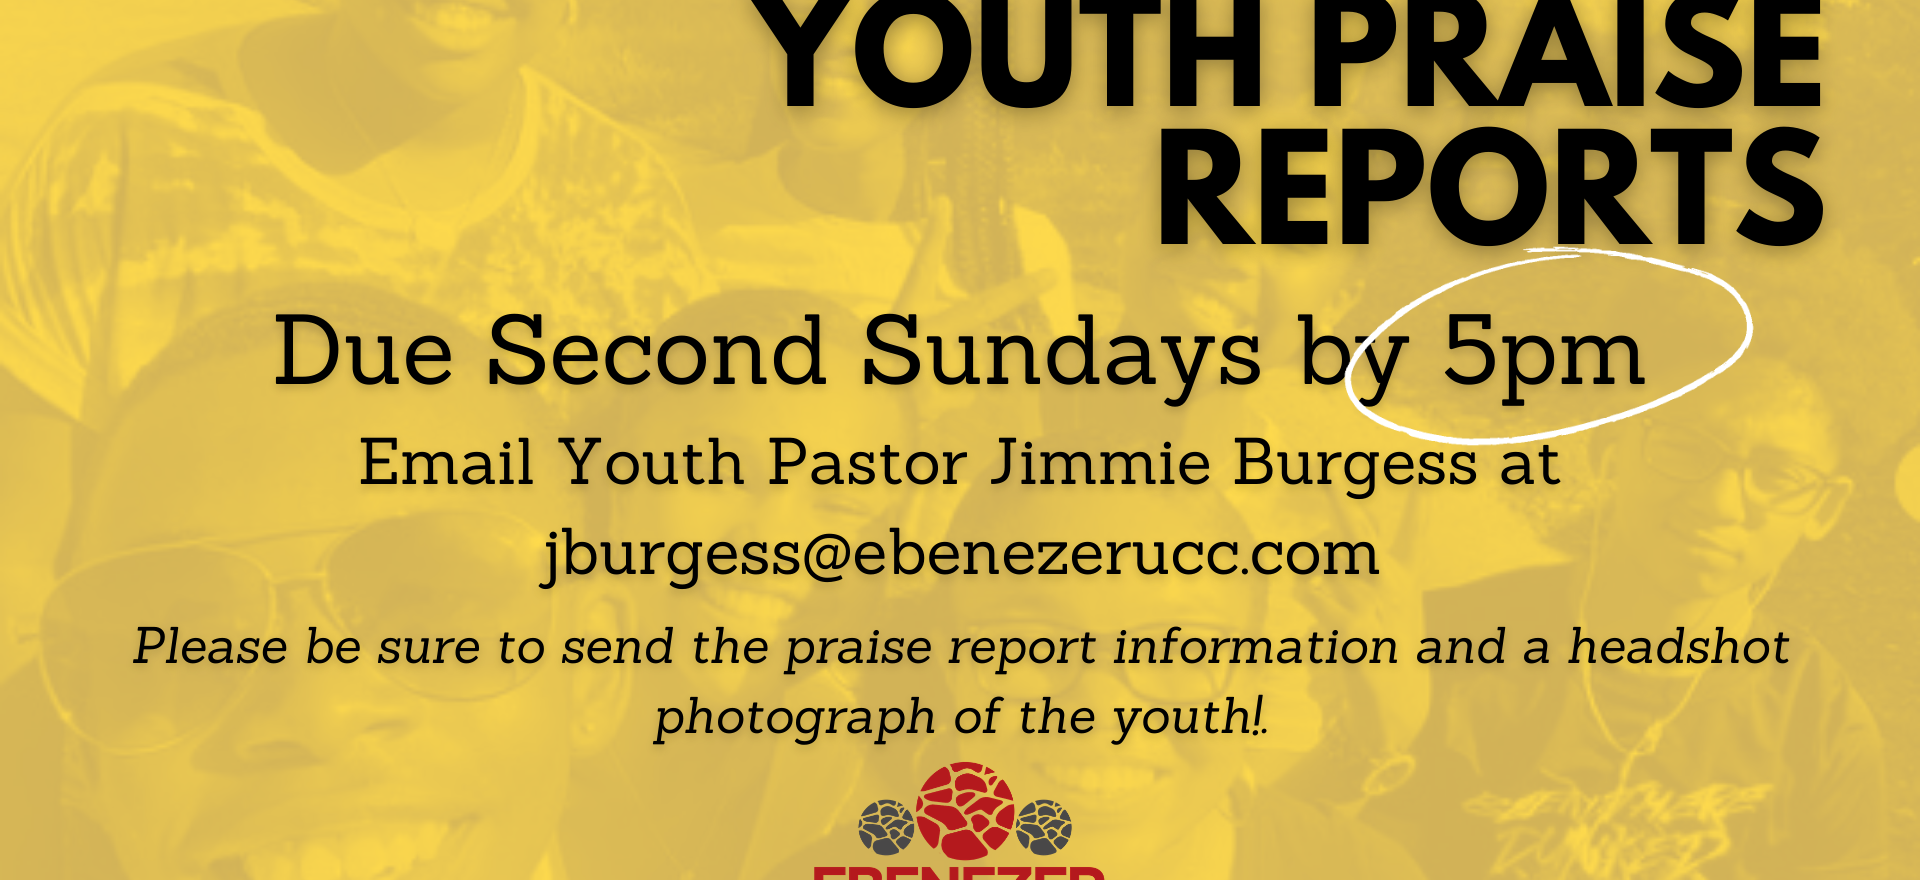 YOUTH PRAISE REPORTS.png